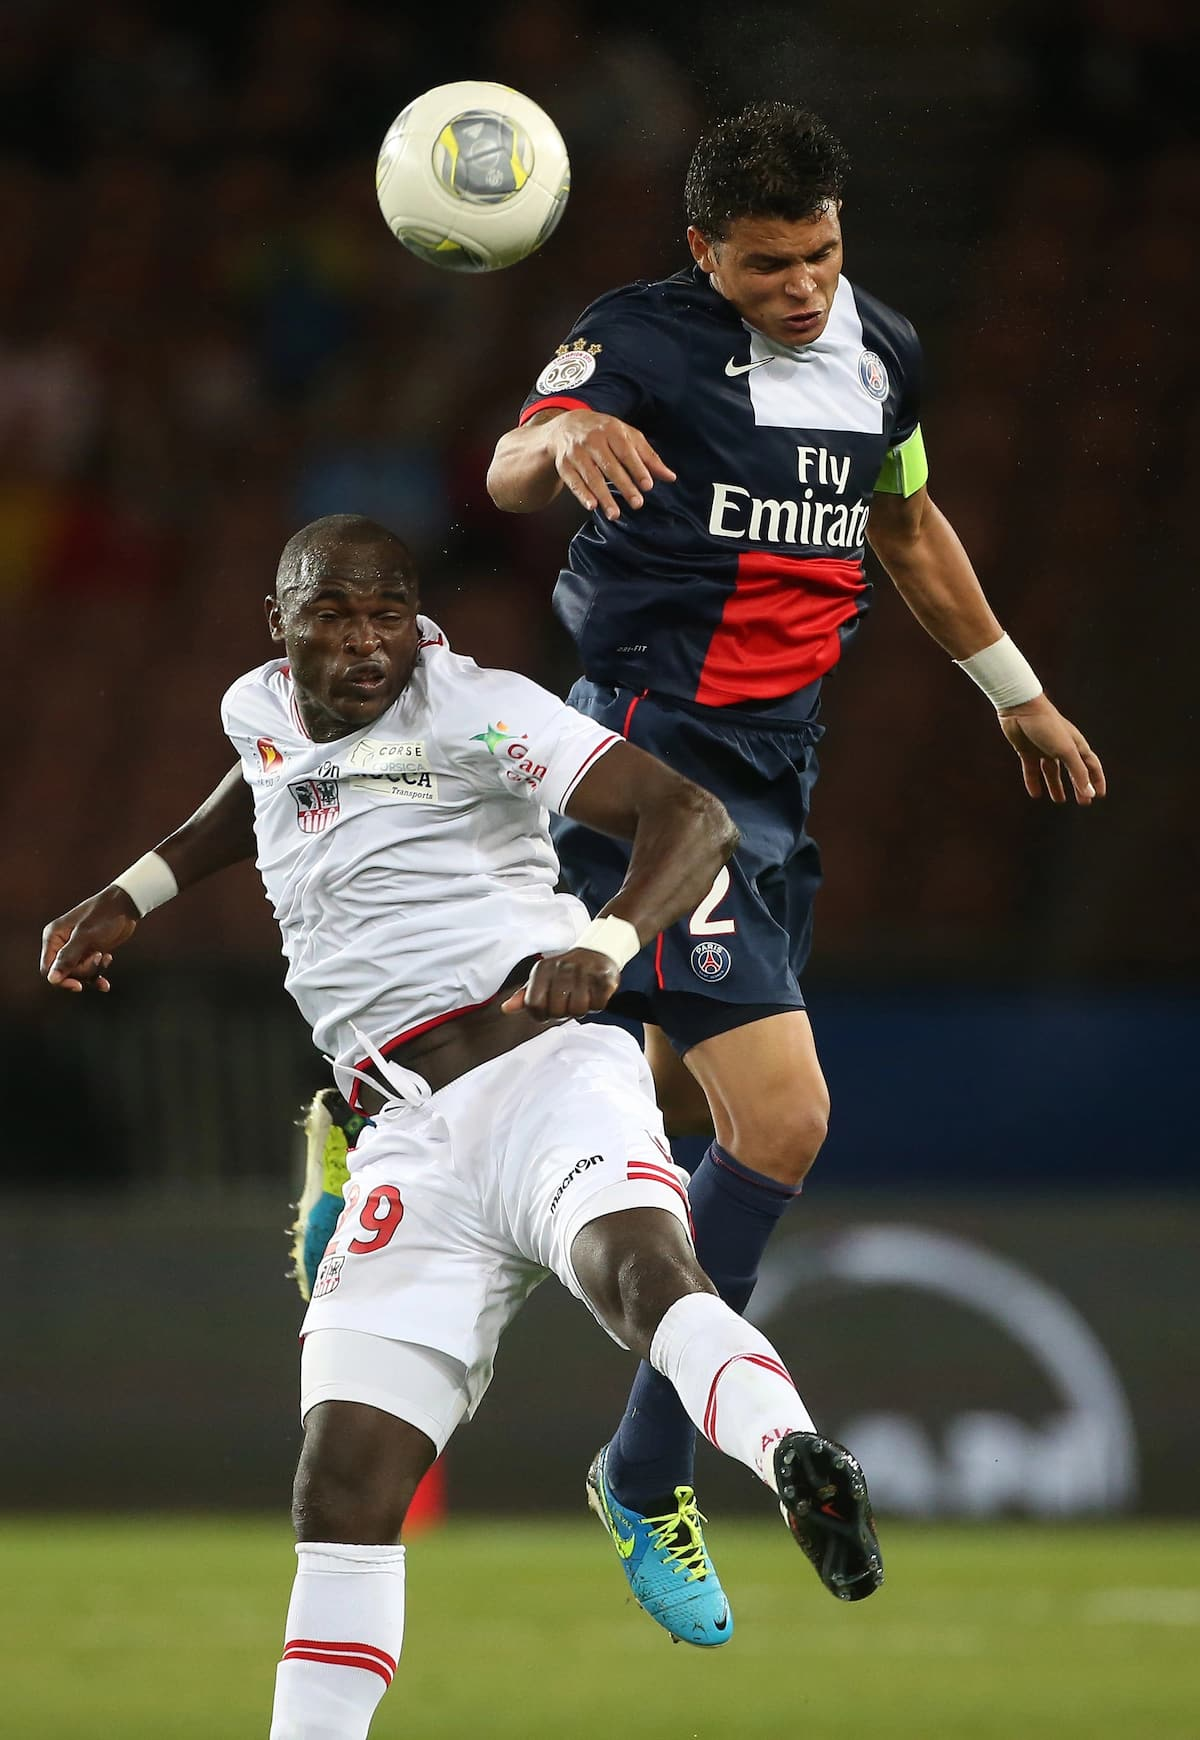 South African club coach Eymael says Dennis Oliech can beat any defender, fitness all he needs